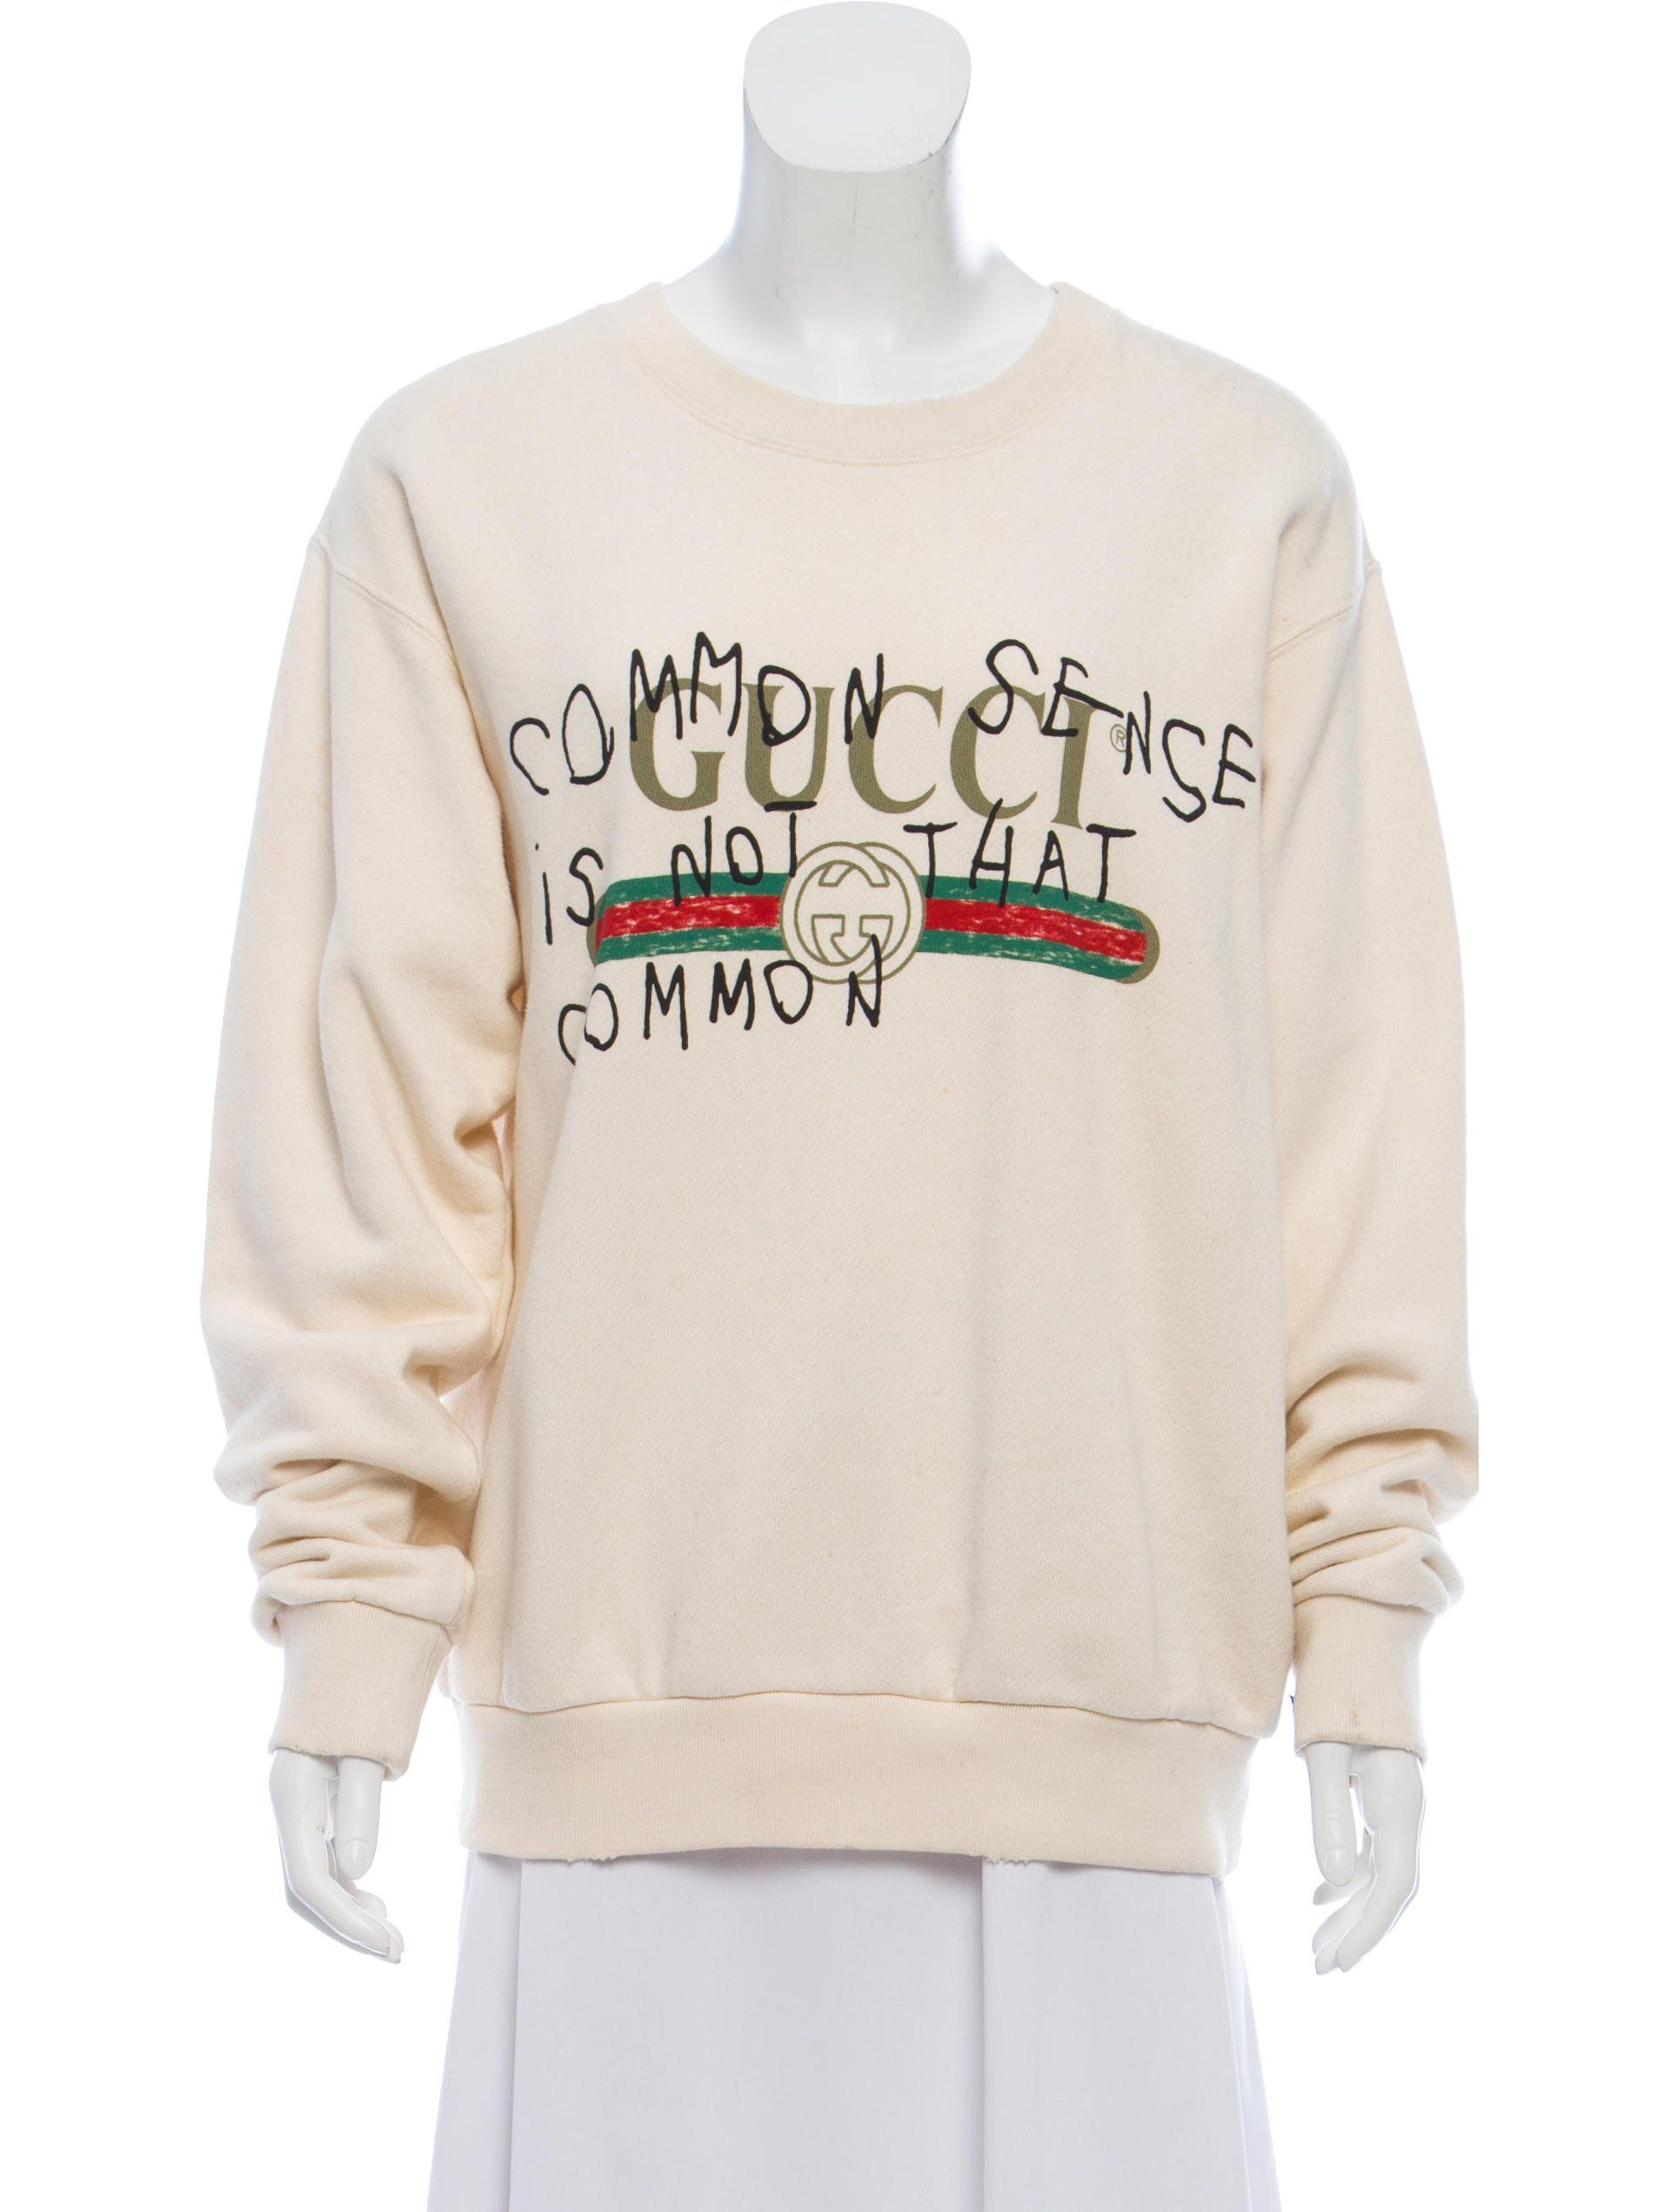 6e2559472 From the 2017 Collection. Creme Gucci Coco Capitán sweatshirt with long  sleeves, crew neck, rib knit trim, logo graphic print and lettering at  front.